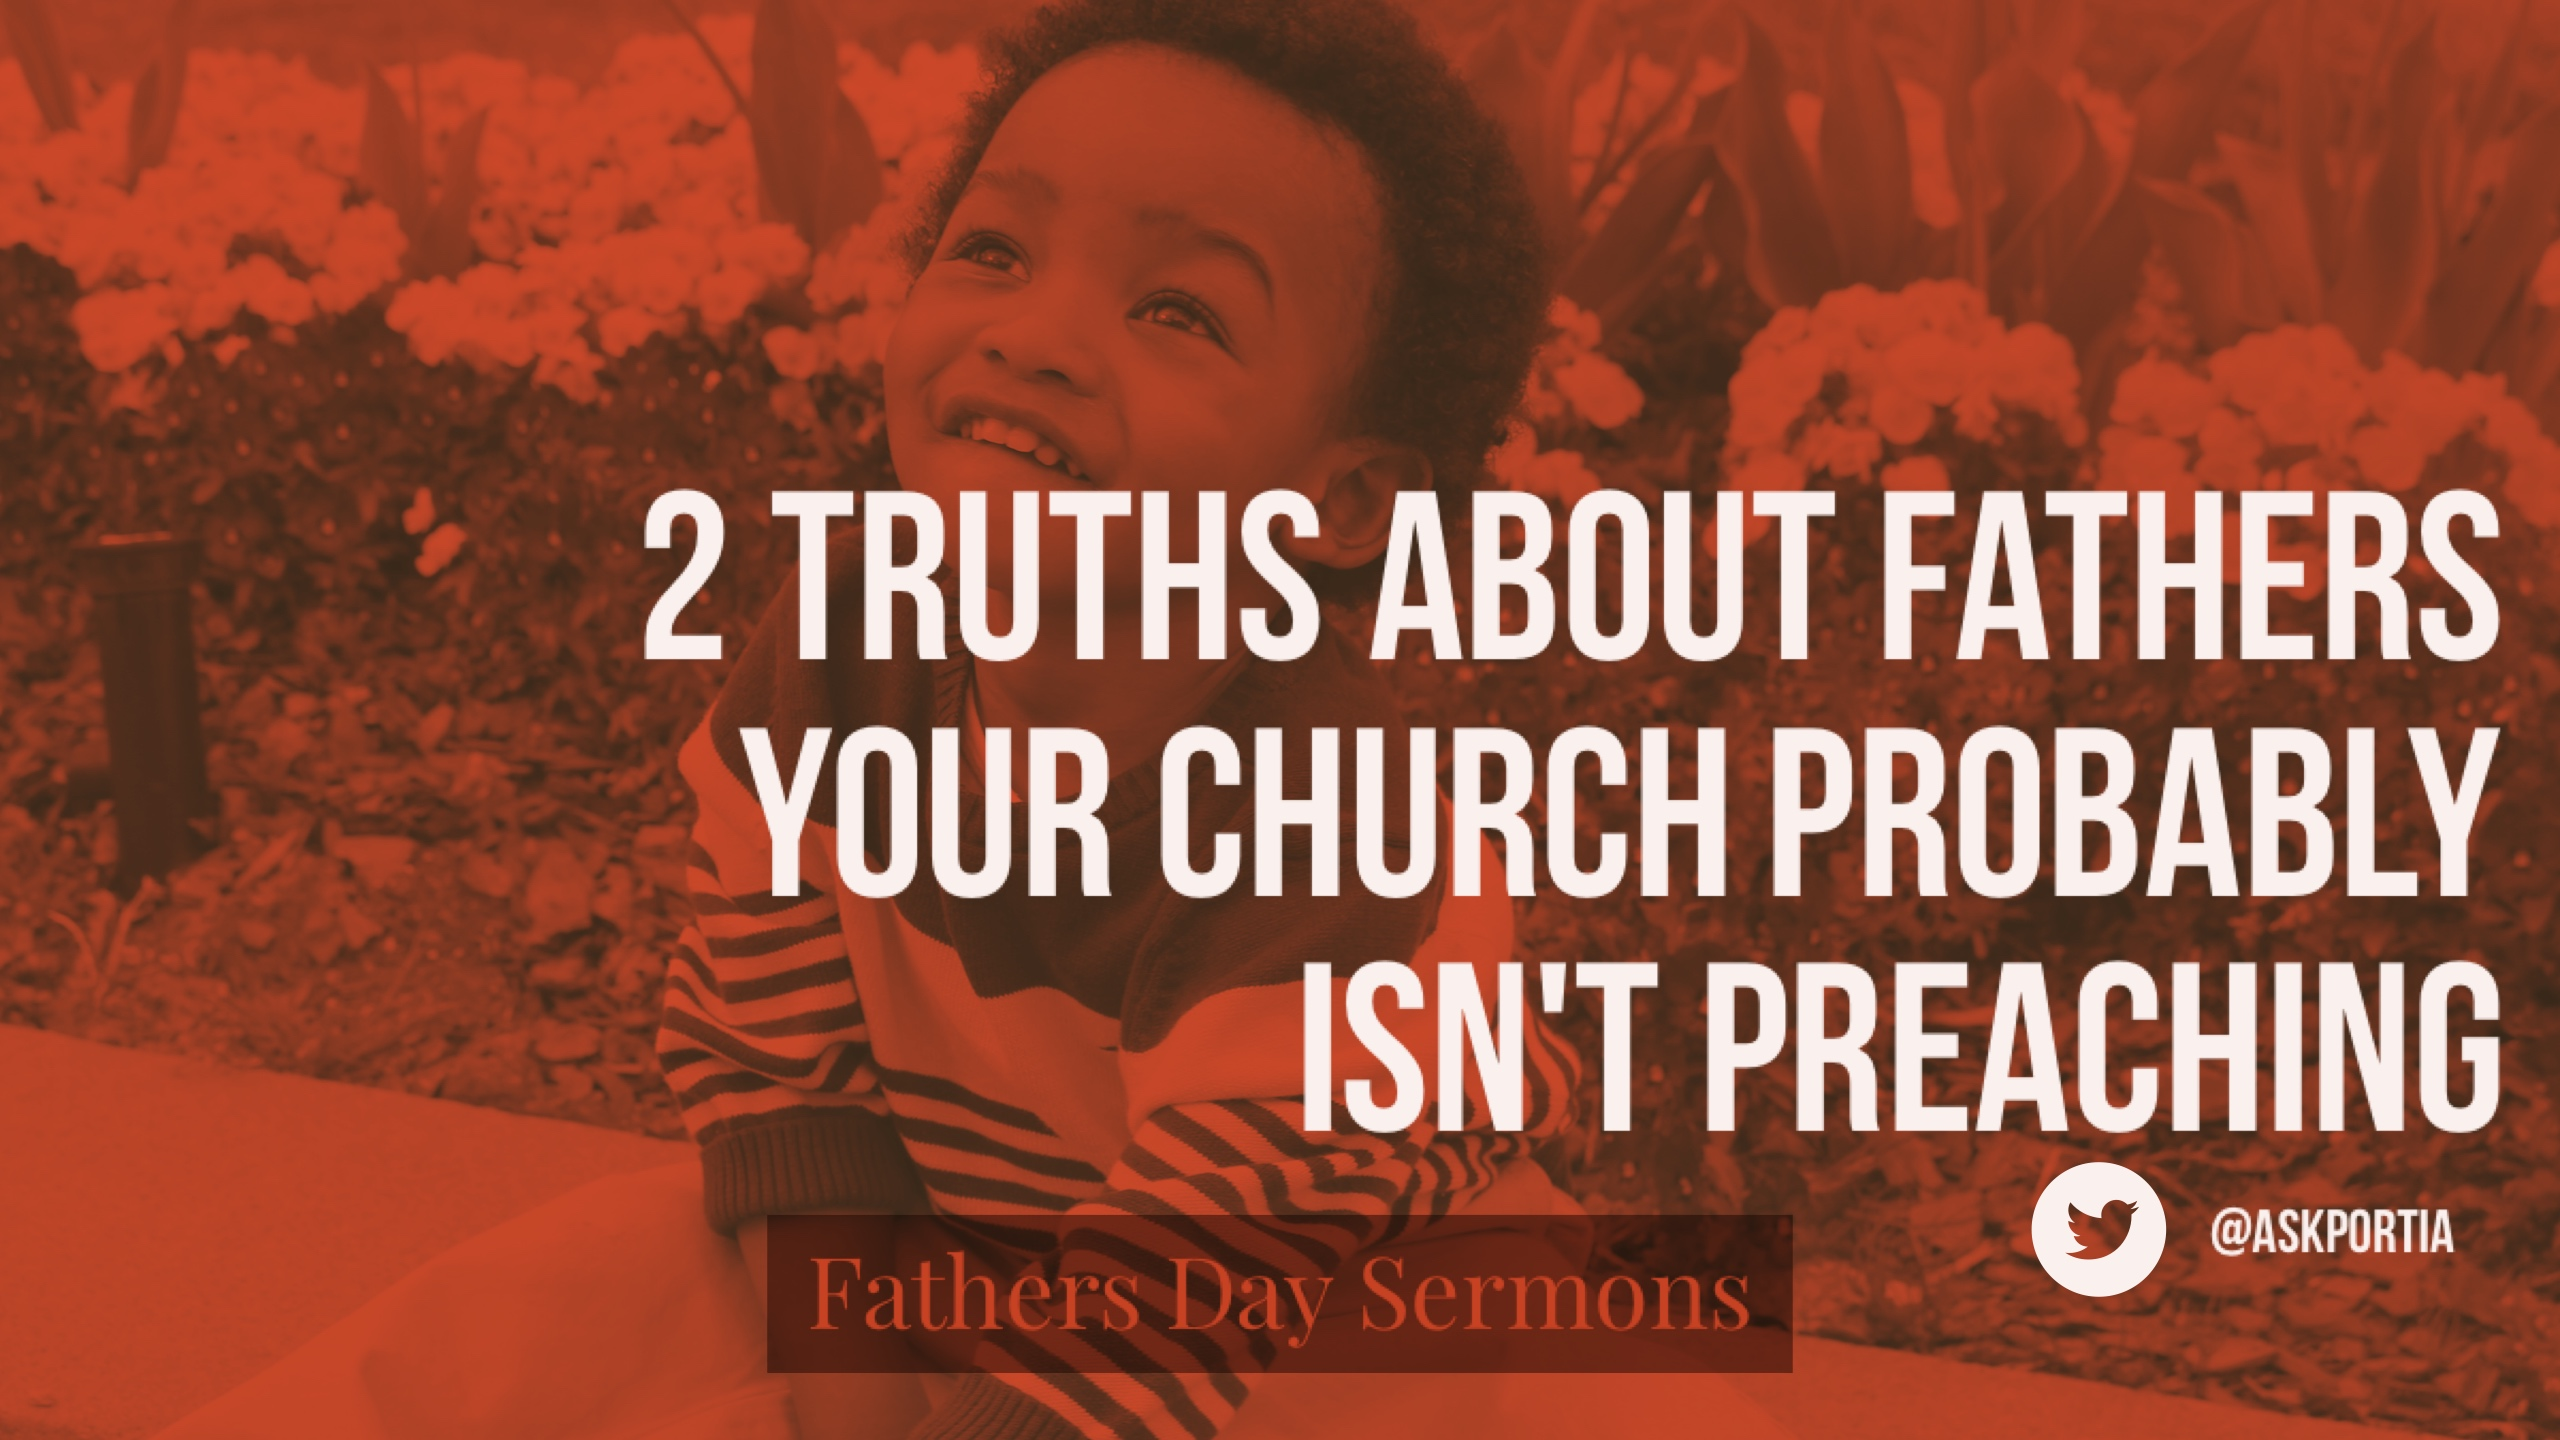 Father's Day sermons